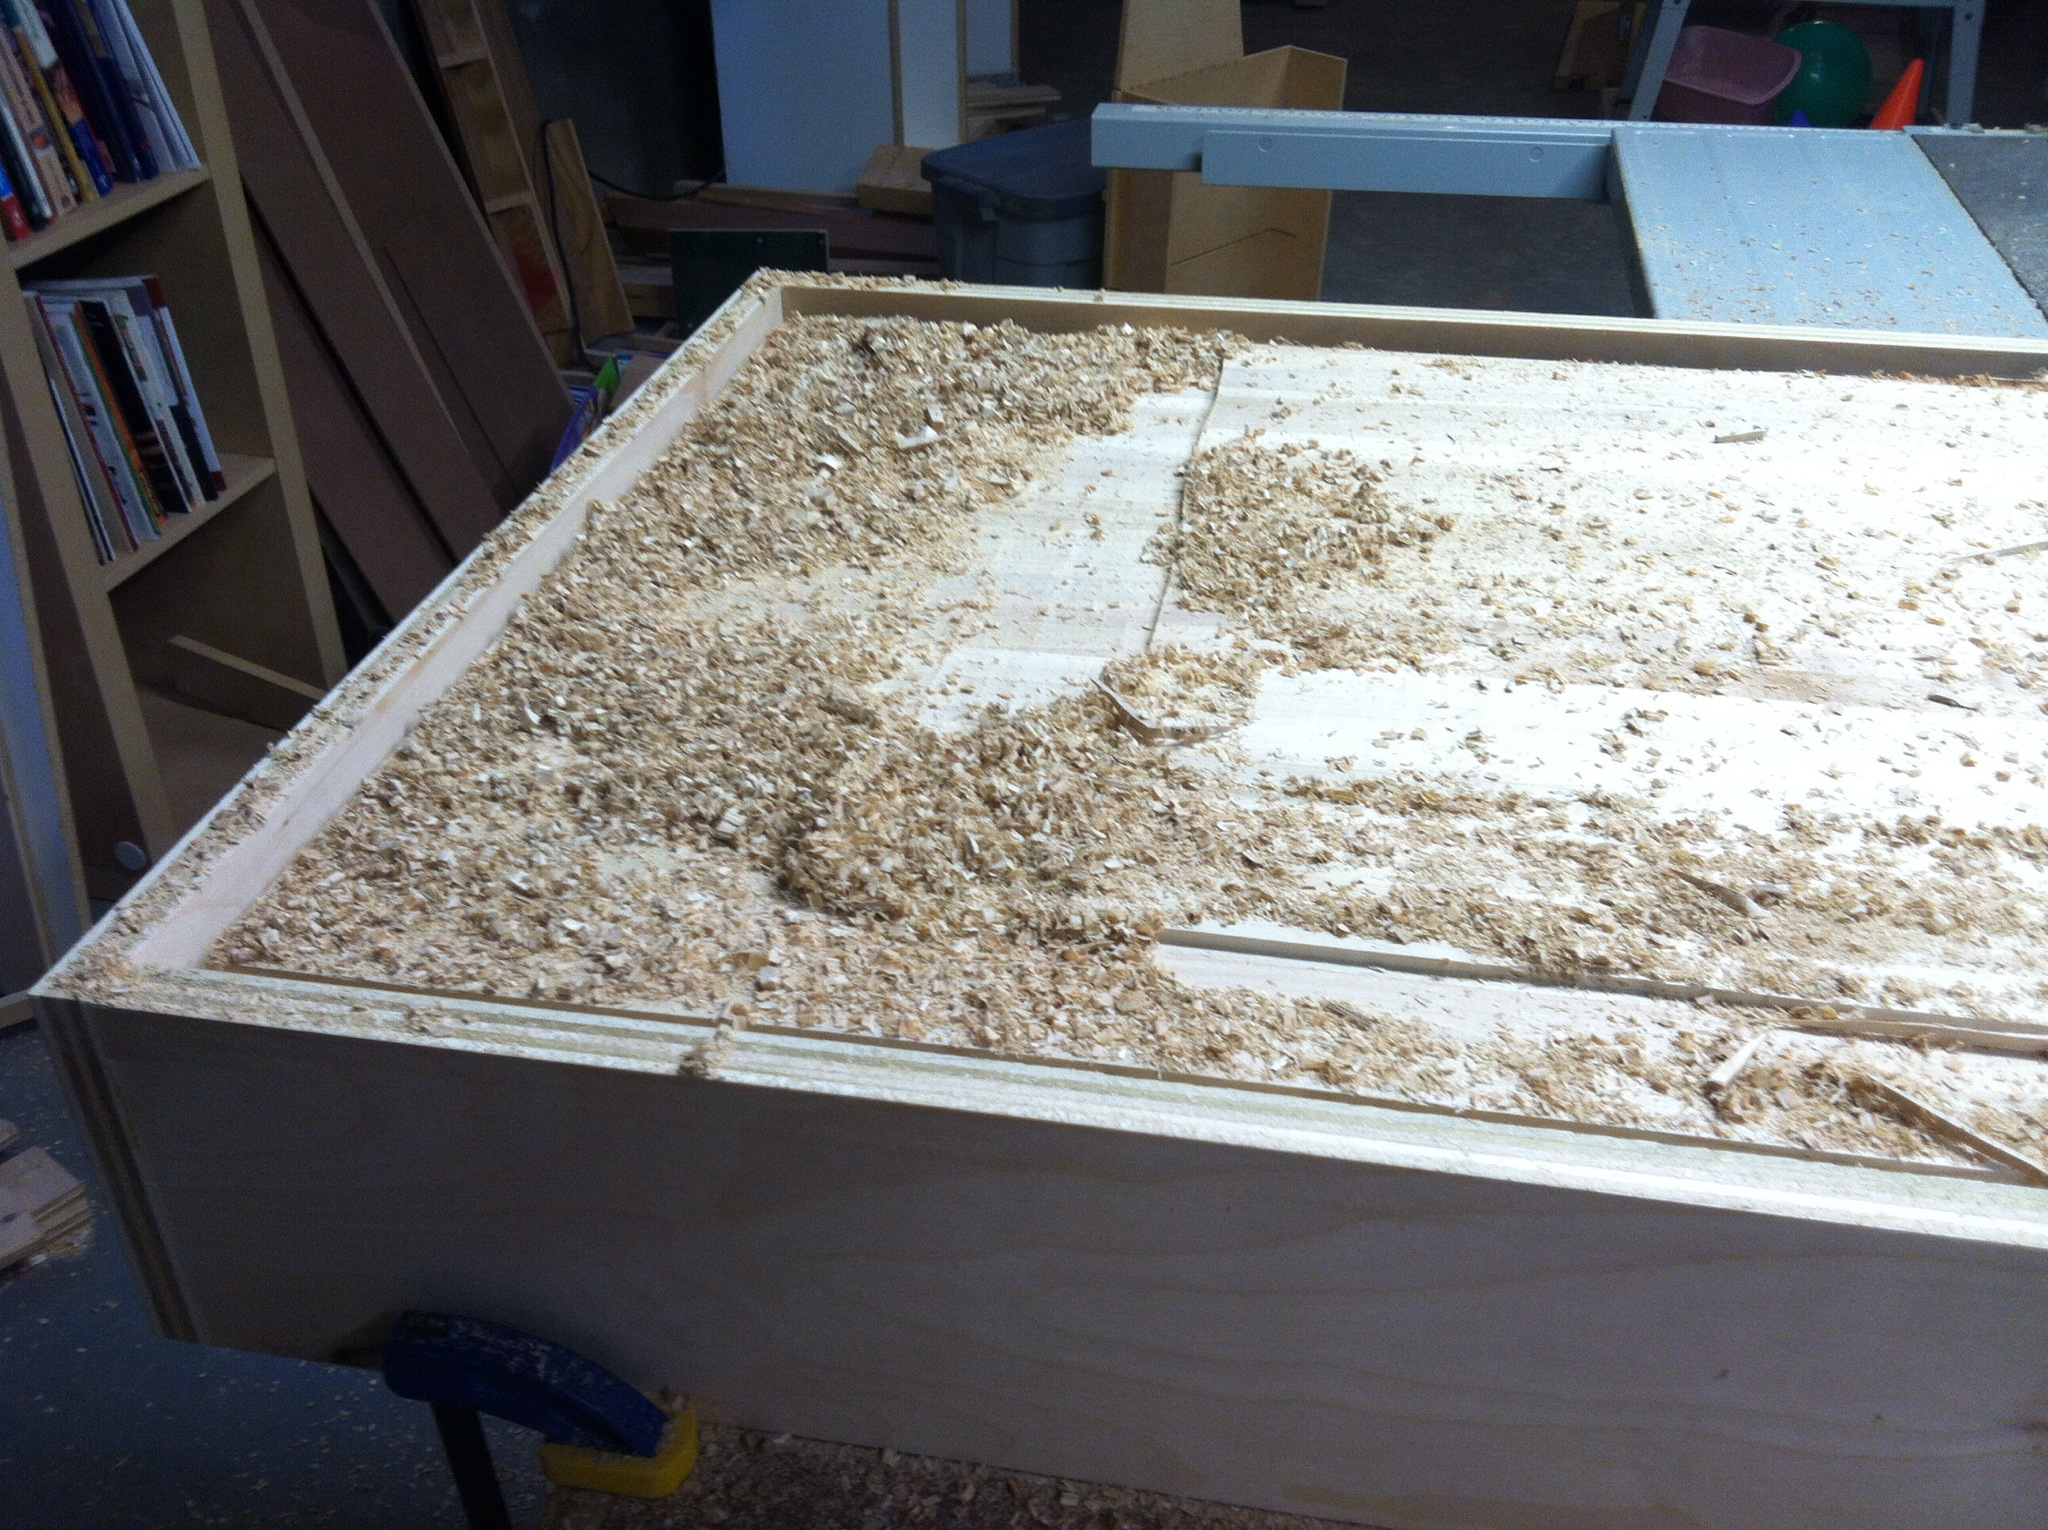 Nearing the finish of the flattening operation. This whole thing turned out much better than expected.